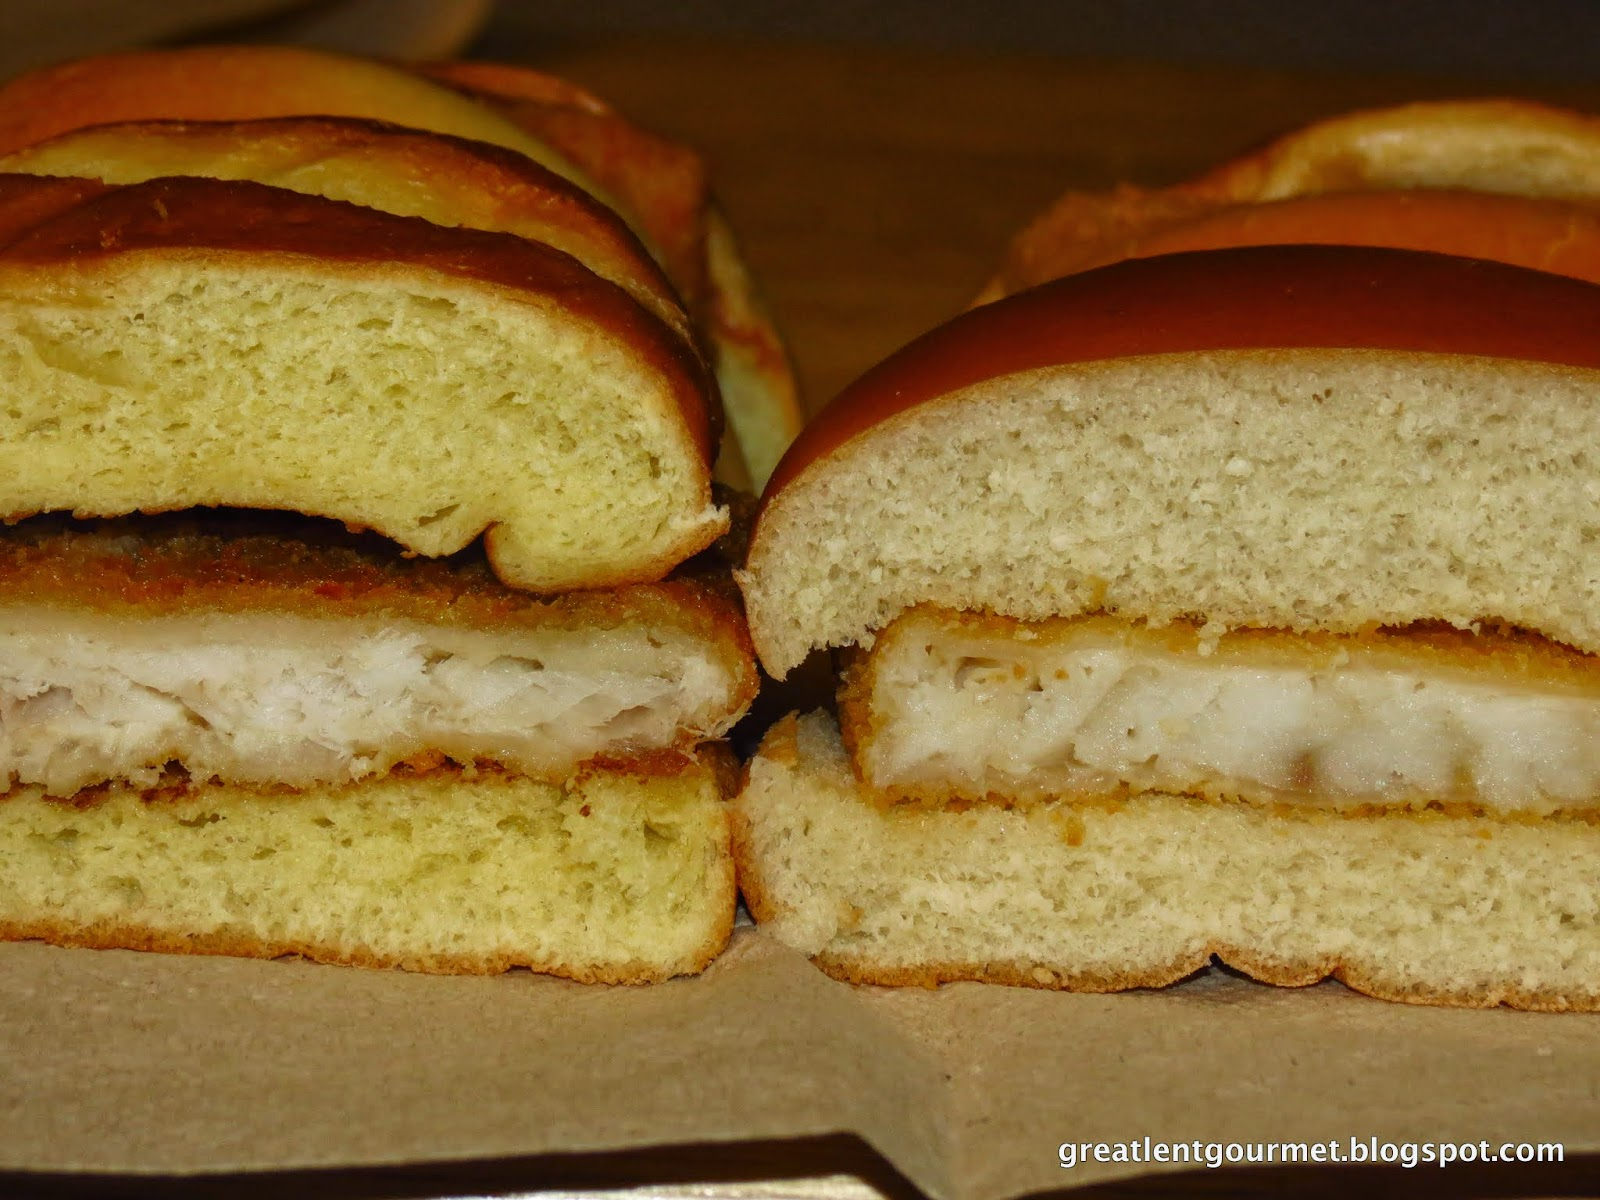 Great lent gourmet day 23 mcdonalds filet o fish vs for Mcdonalds fish sandwich